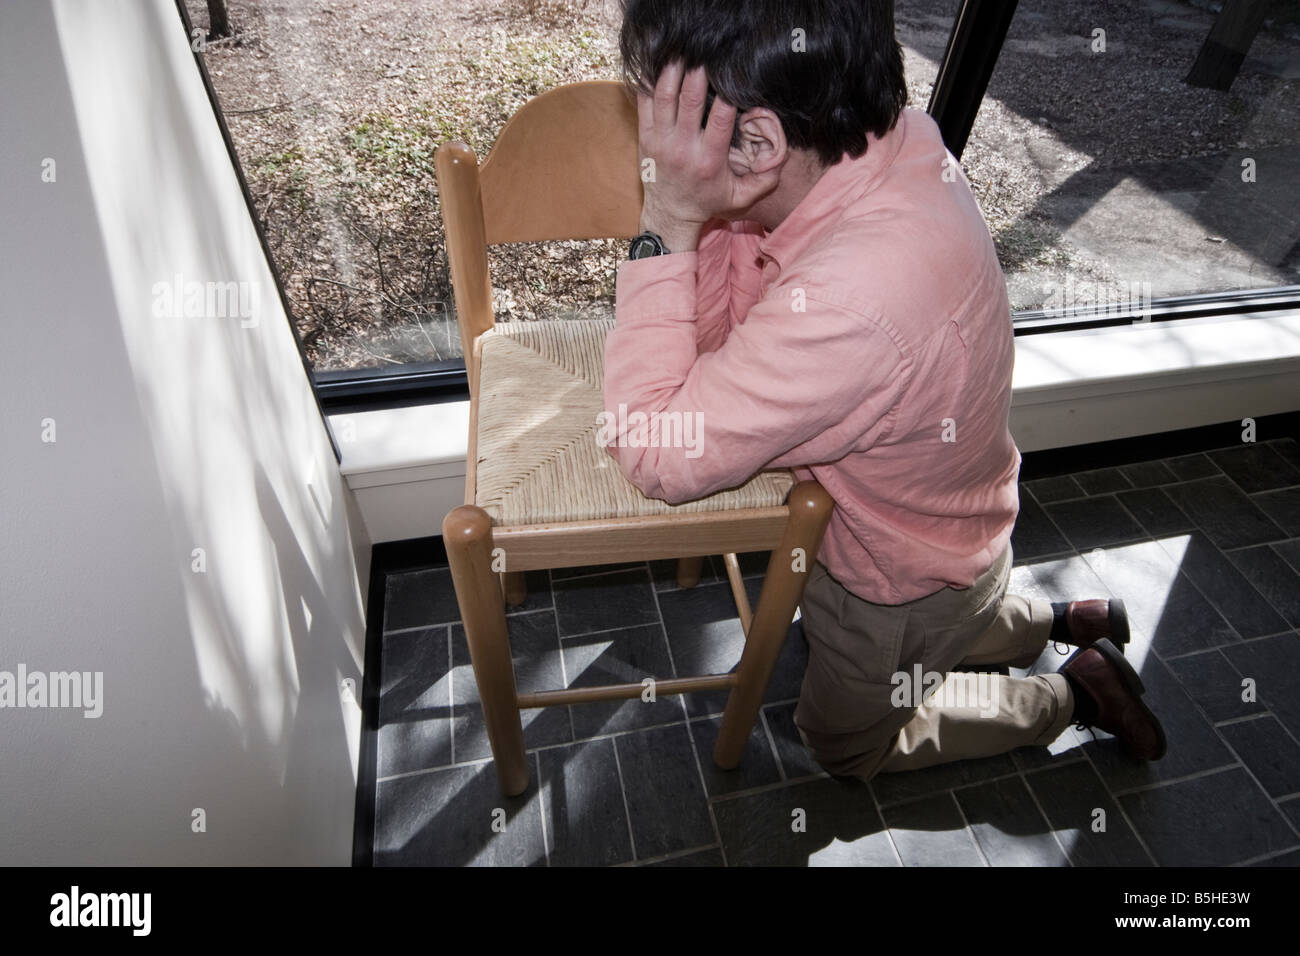 Man on his knees leaning against a chair MODEL RELEASED - Stock Image